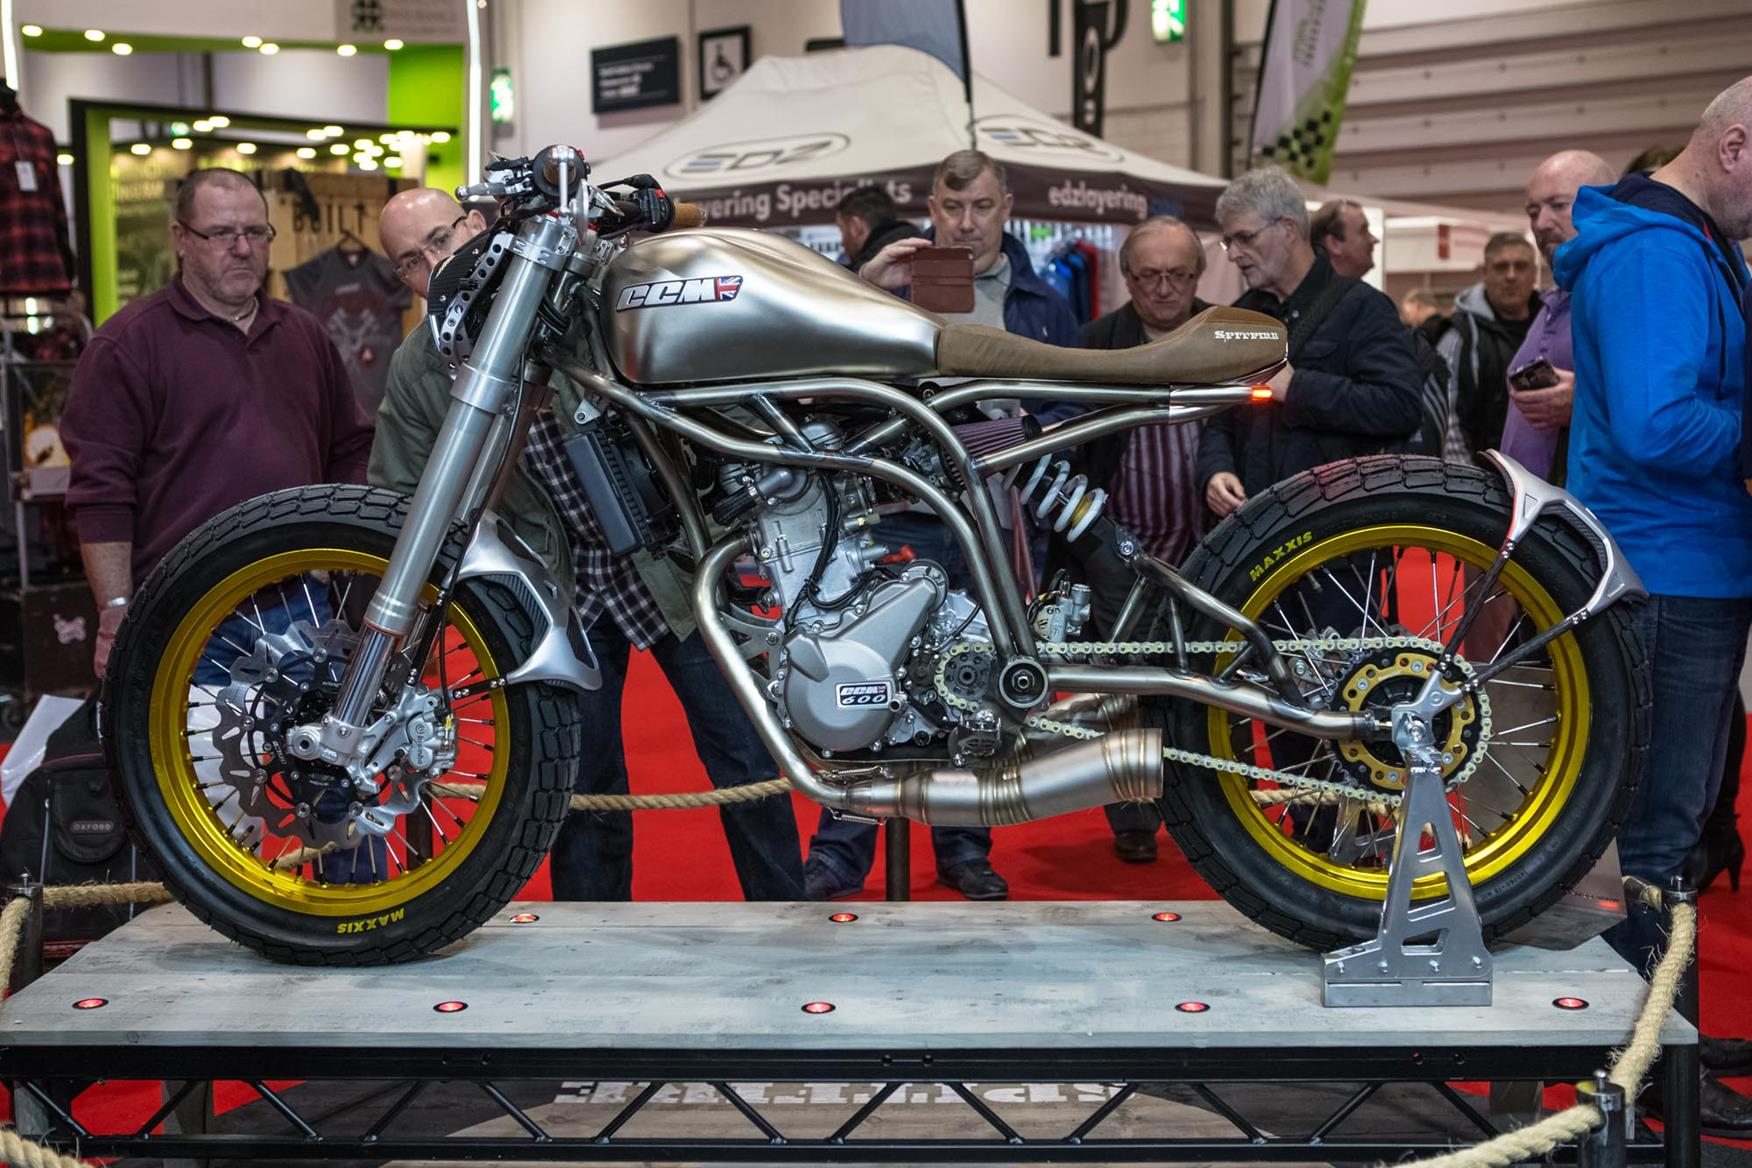 Cafe Racer Motorcycle Shows